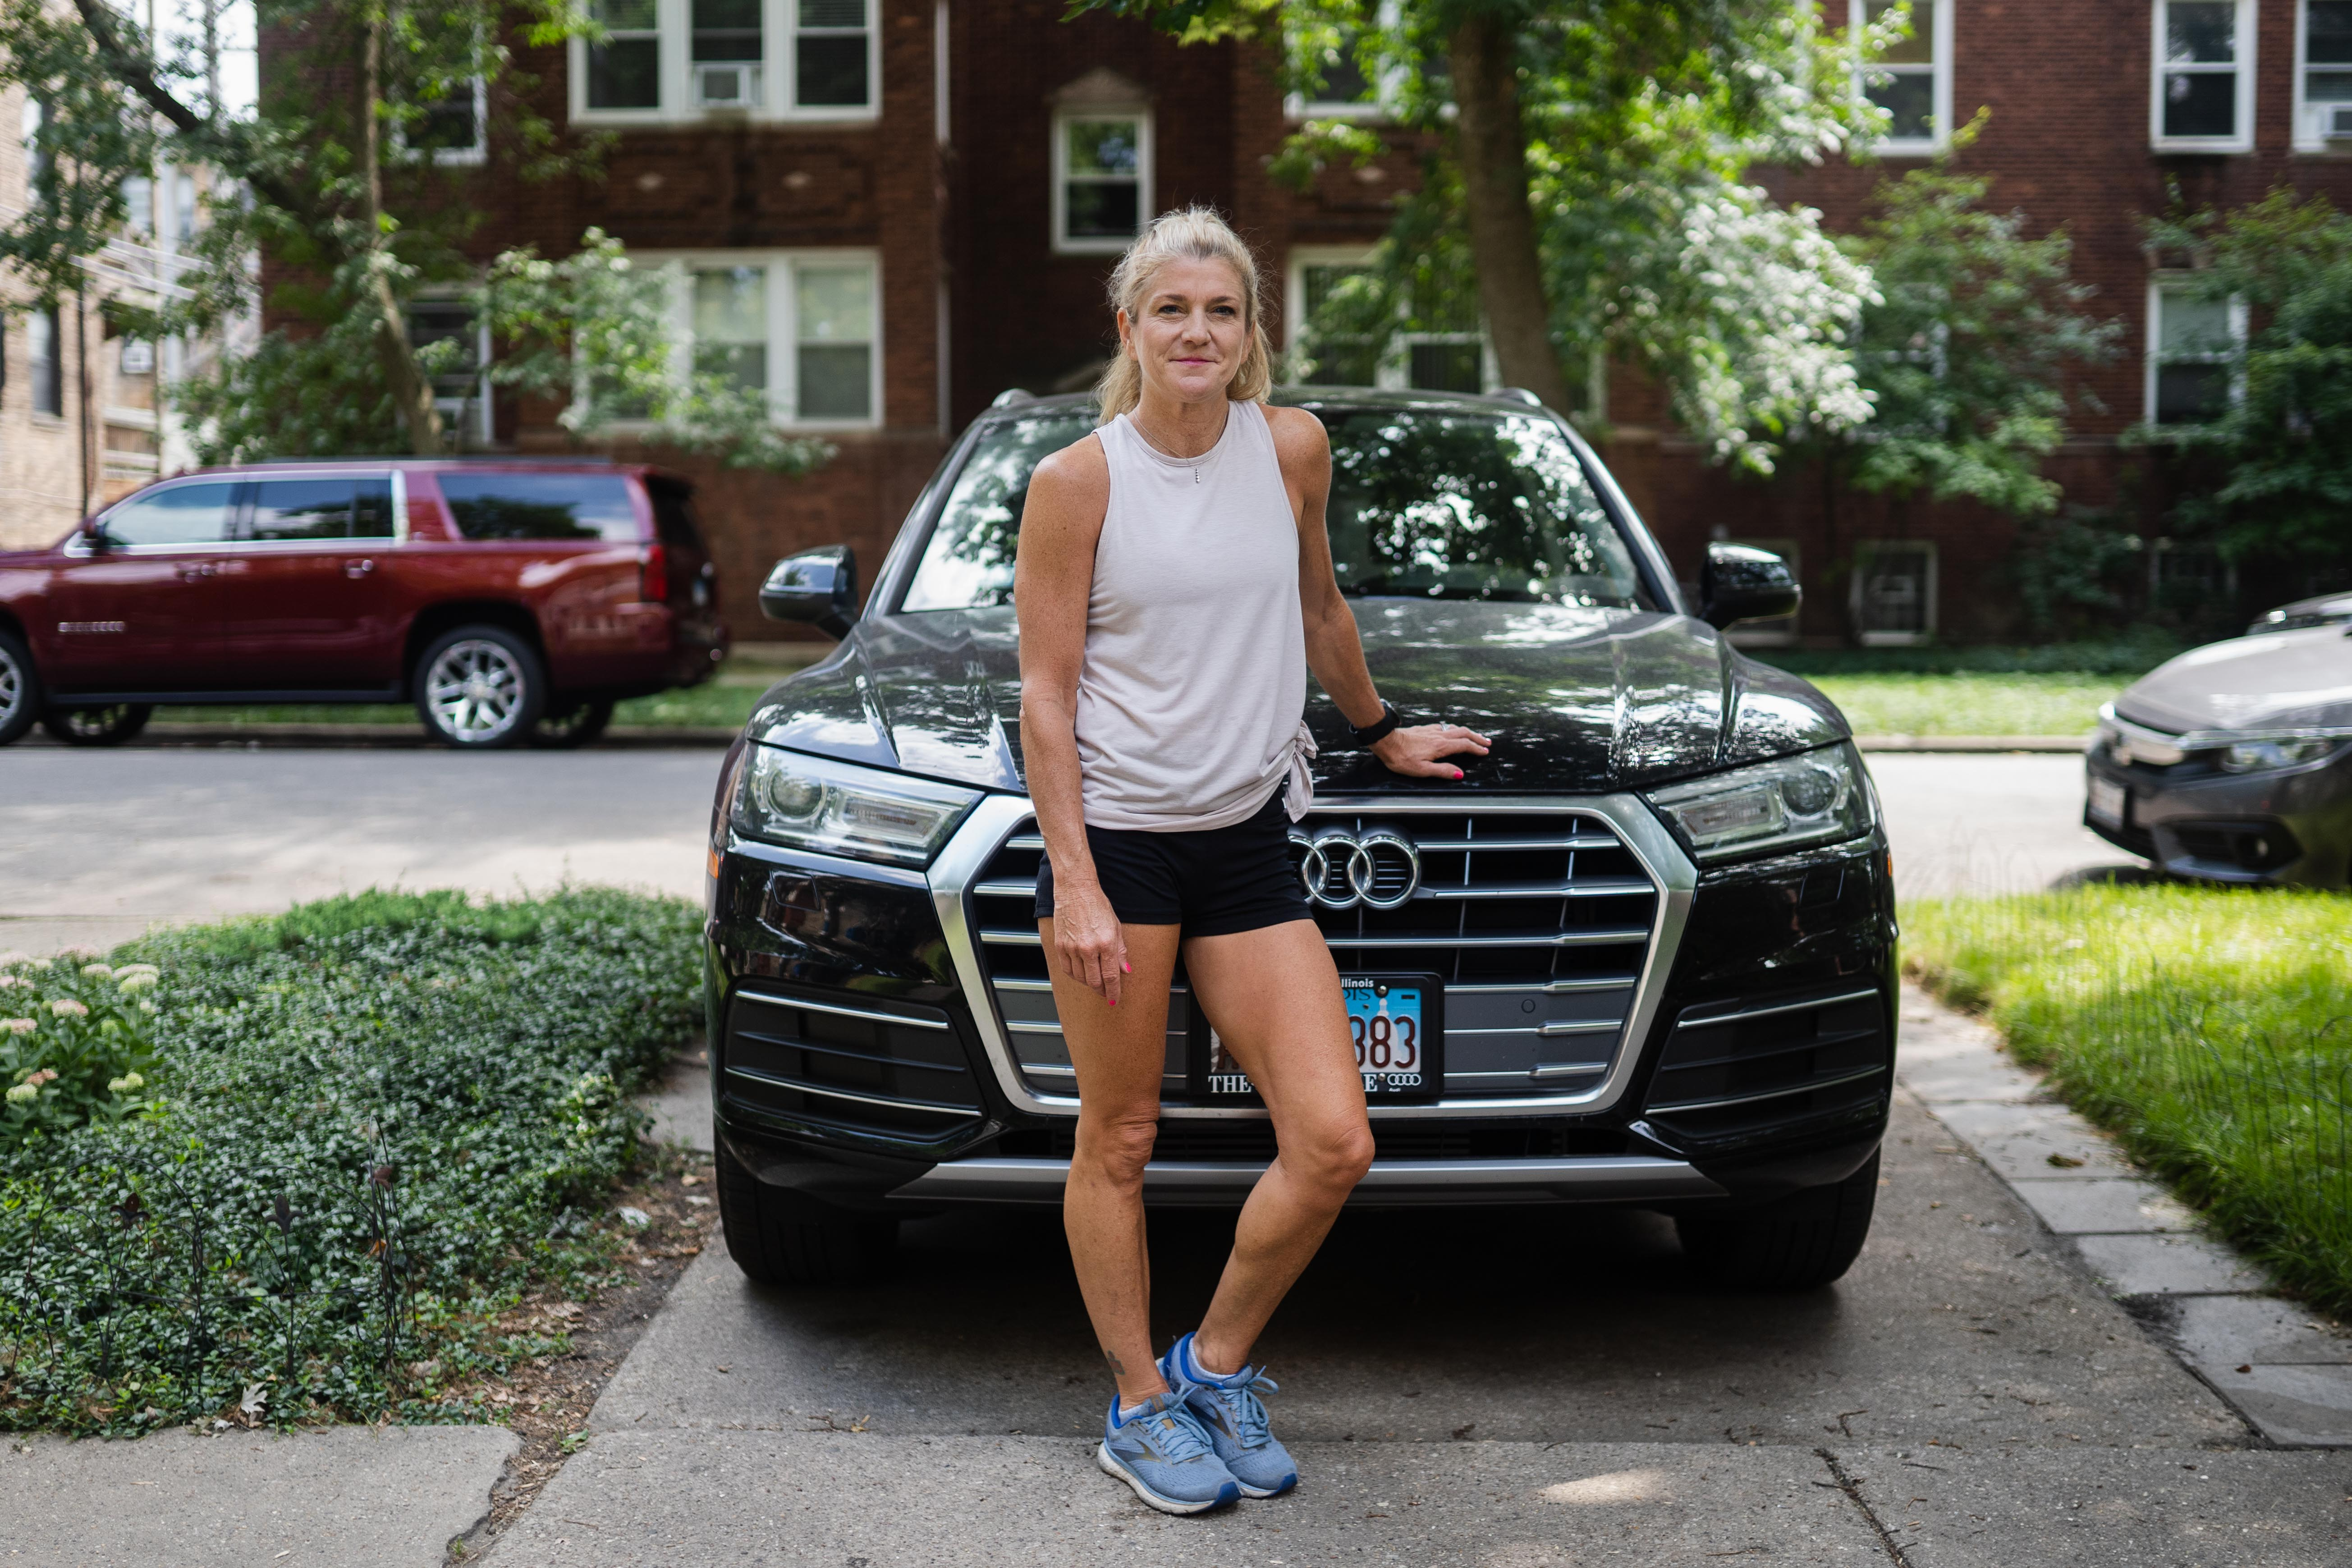 Karie Valentino, a lawyer who lives in Ravenswood, is standing her driveway and leaning against the front of her black Audi SUV. She says she drives a lot less since the coronavirus pandemic hit. Meetings that used to be in person are now done online, and she says her commuting habits have forever changed.